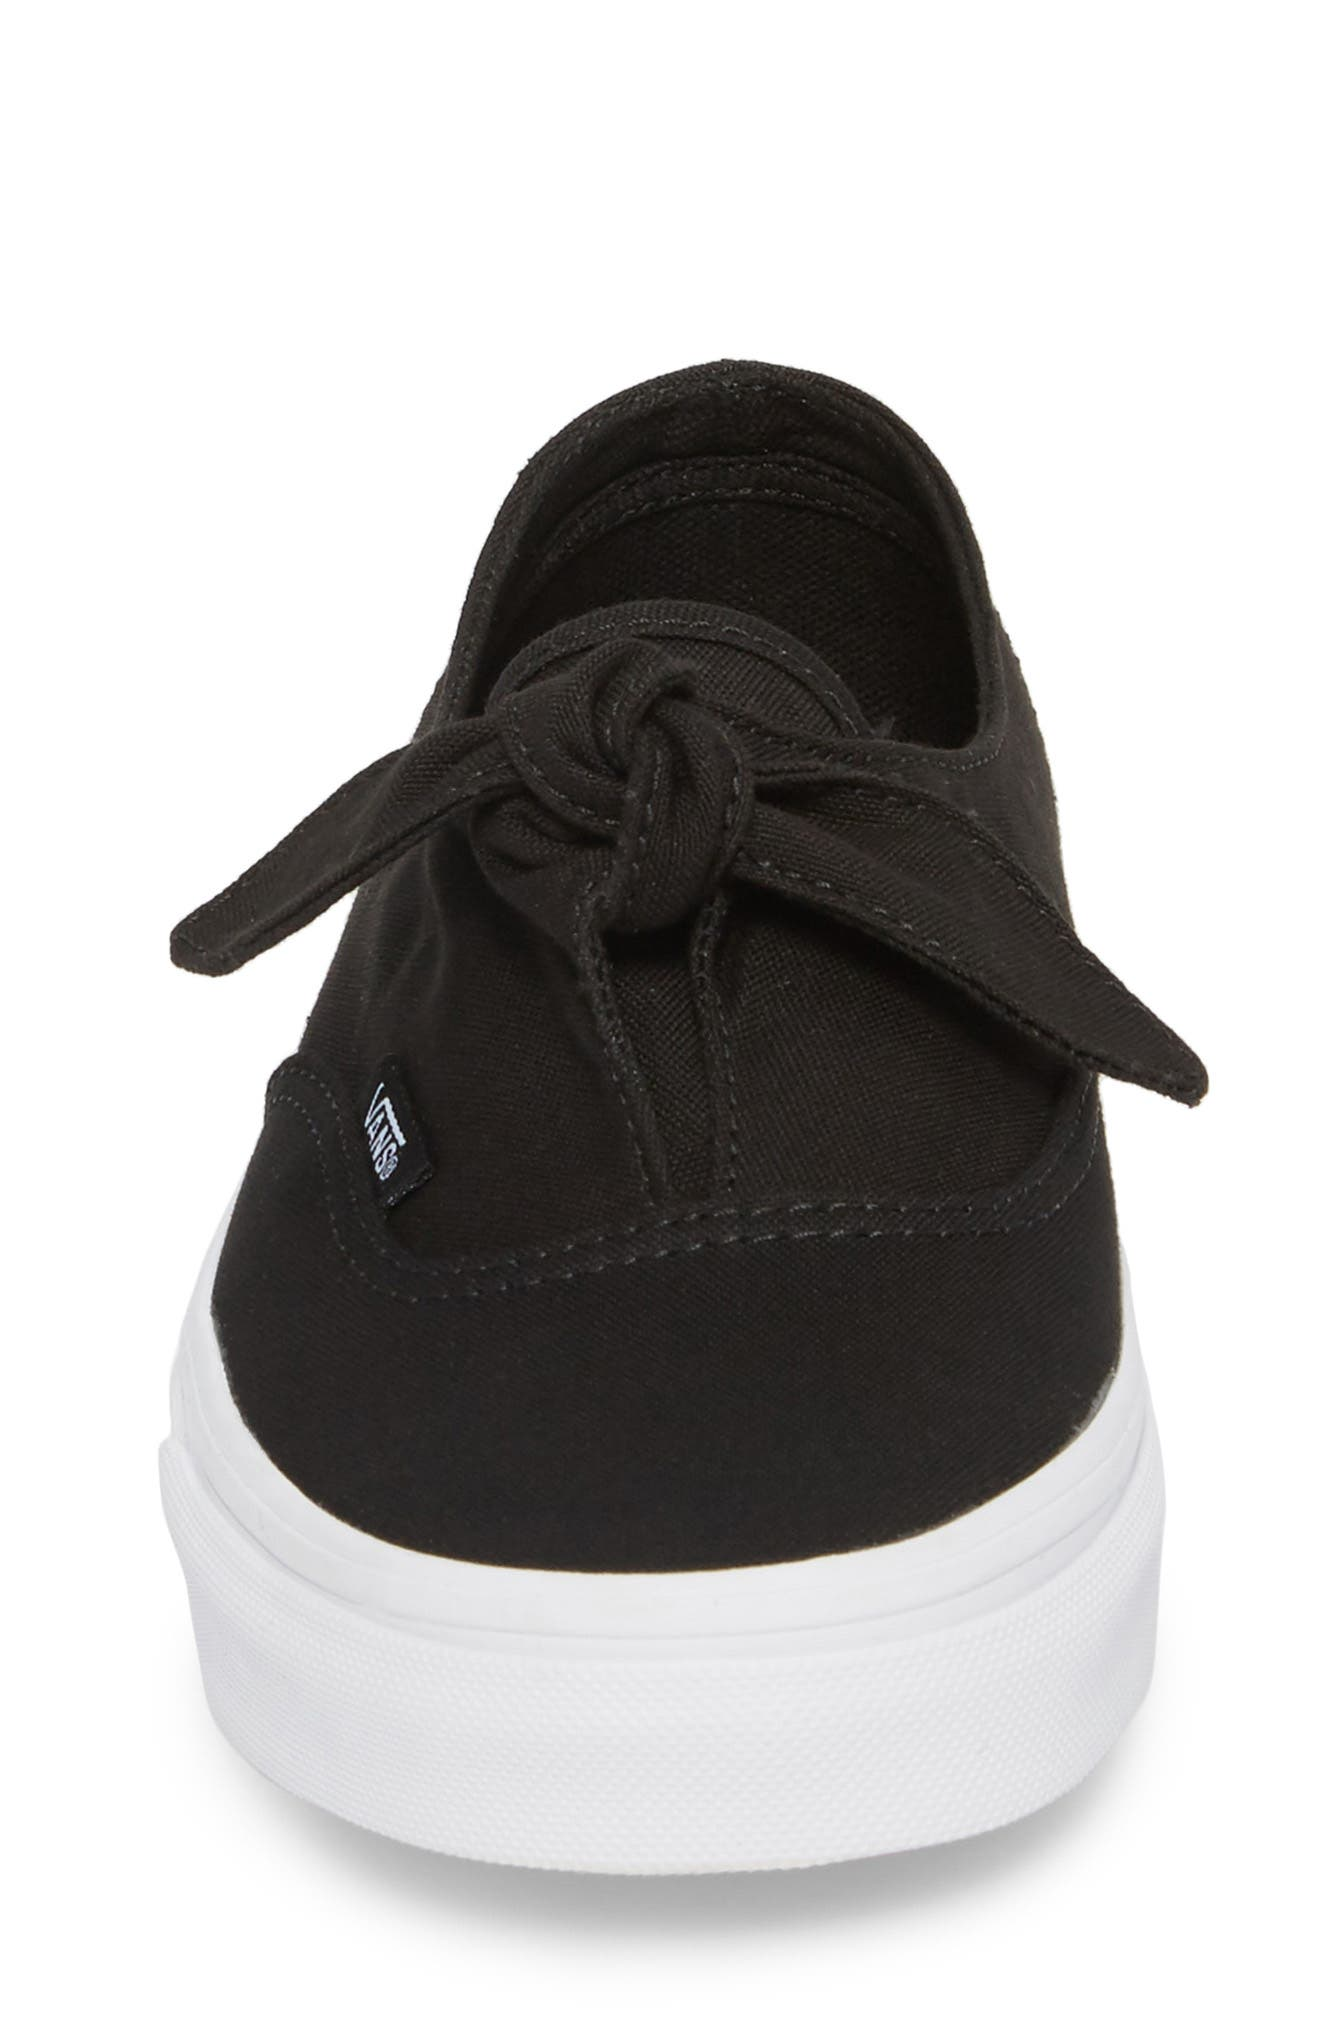 UA Authentic Knotted Slip-On Sneaker,                             Alternate thumbnail 4, color,                             001